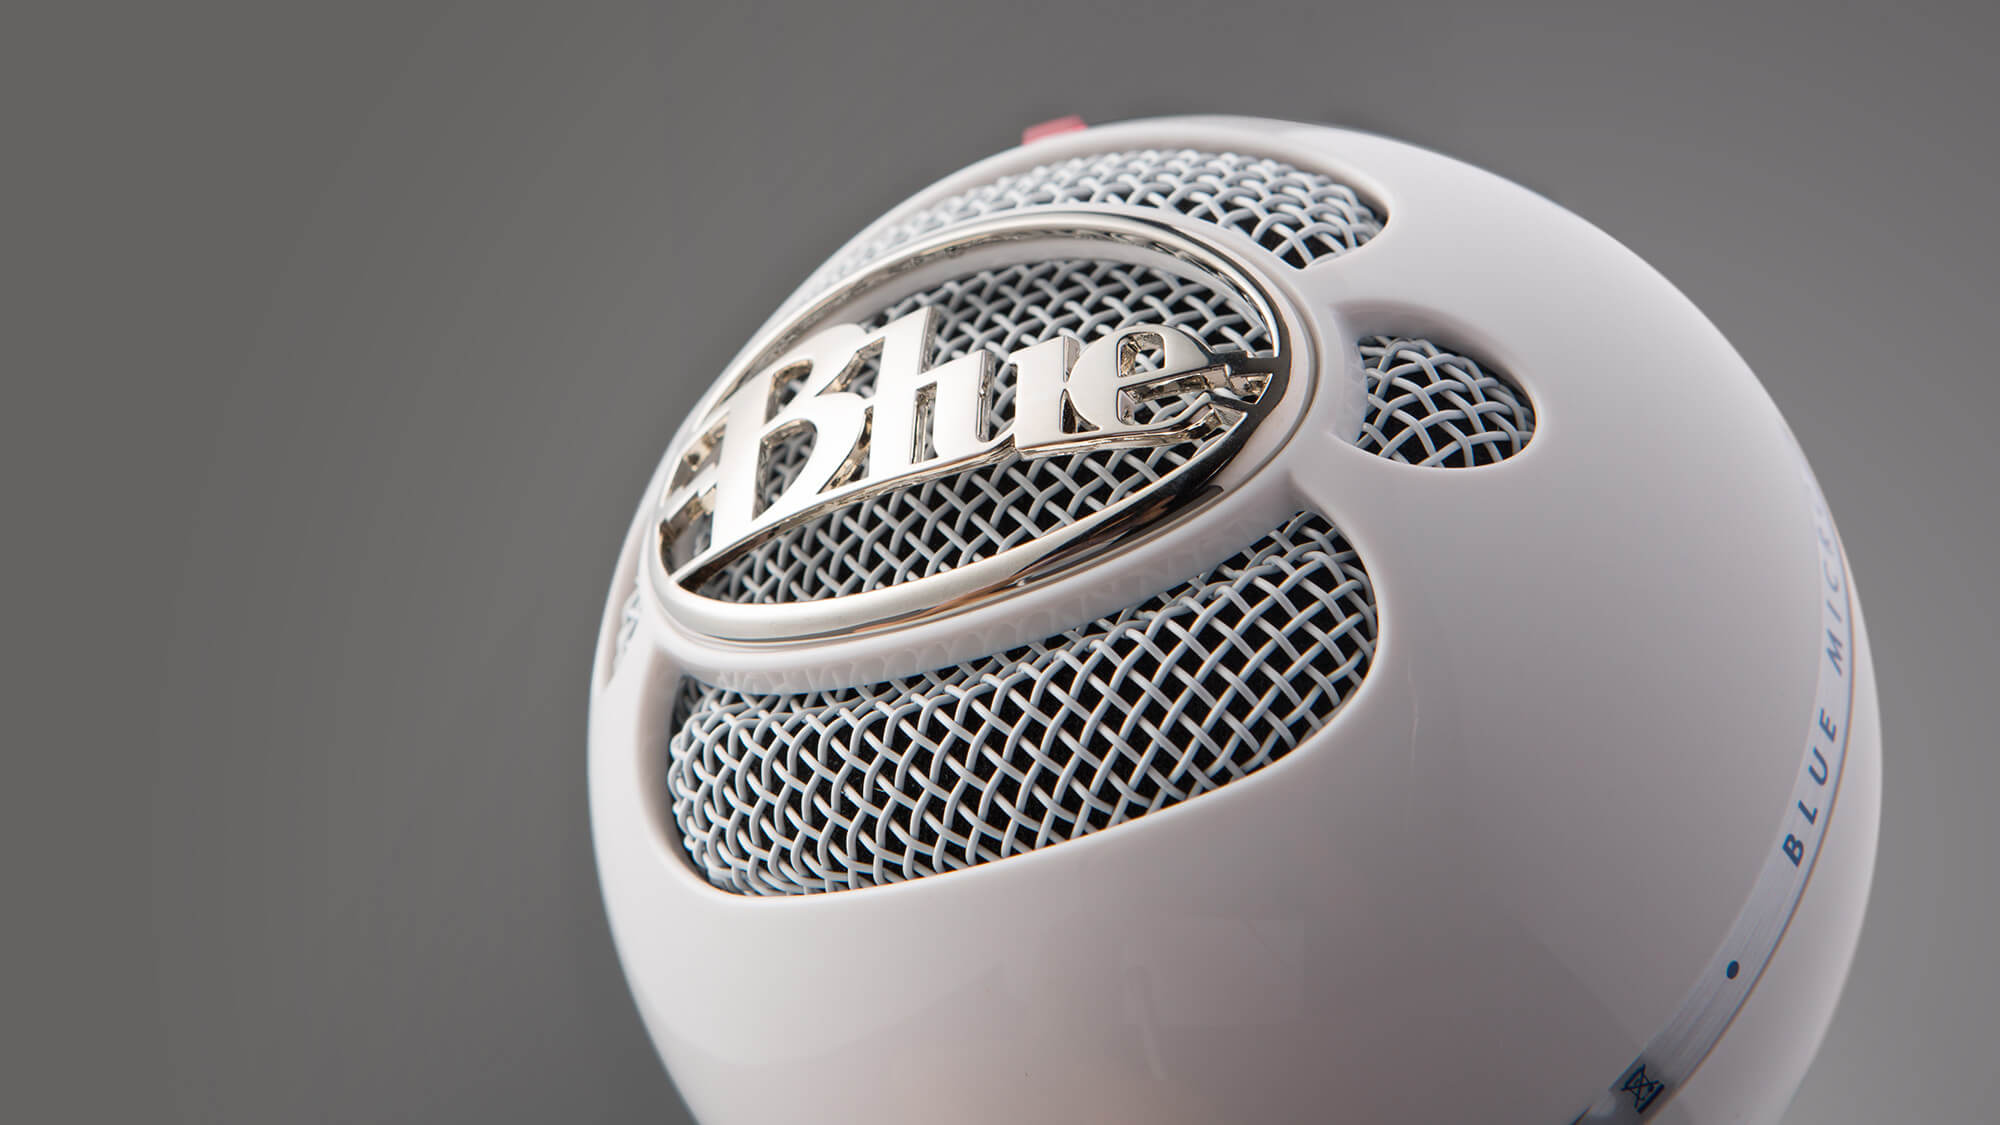 Blue microphone Snowball iCE review